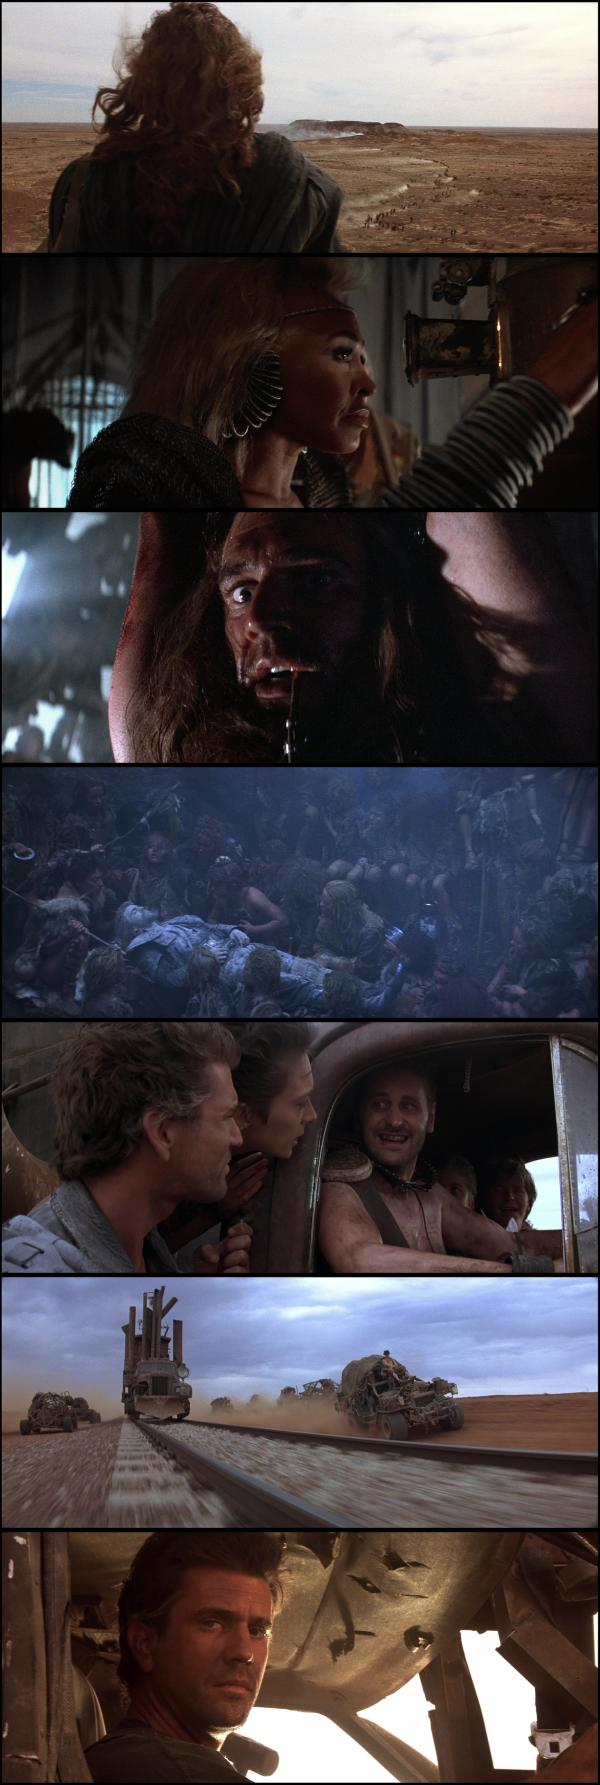 http://watershade.net/public/mad-max-beyond-thunderdome.jpg